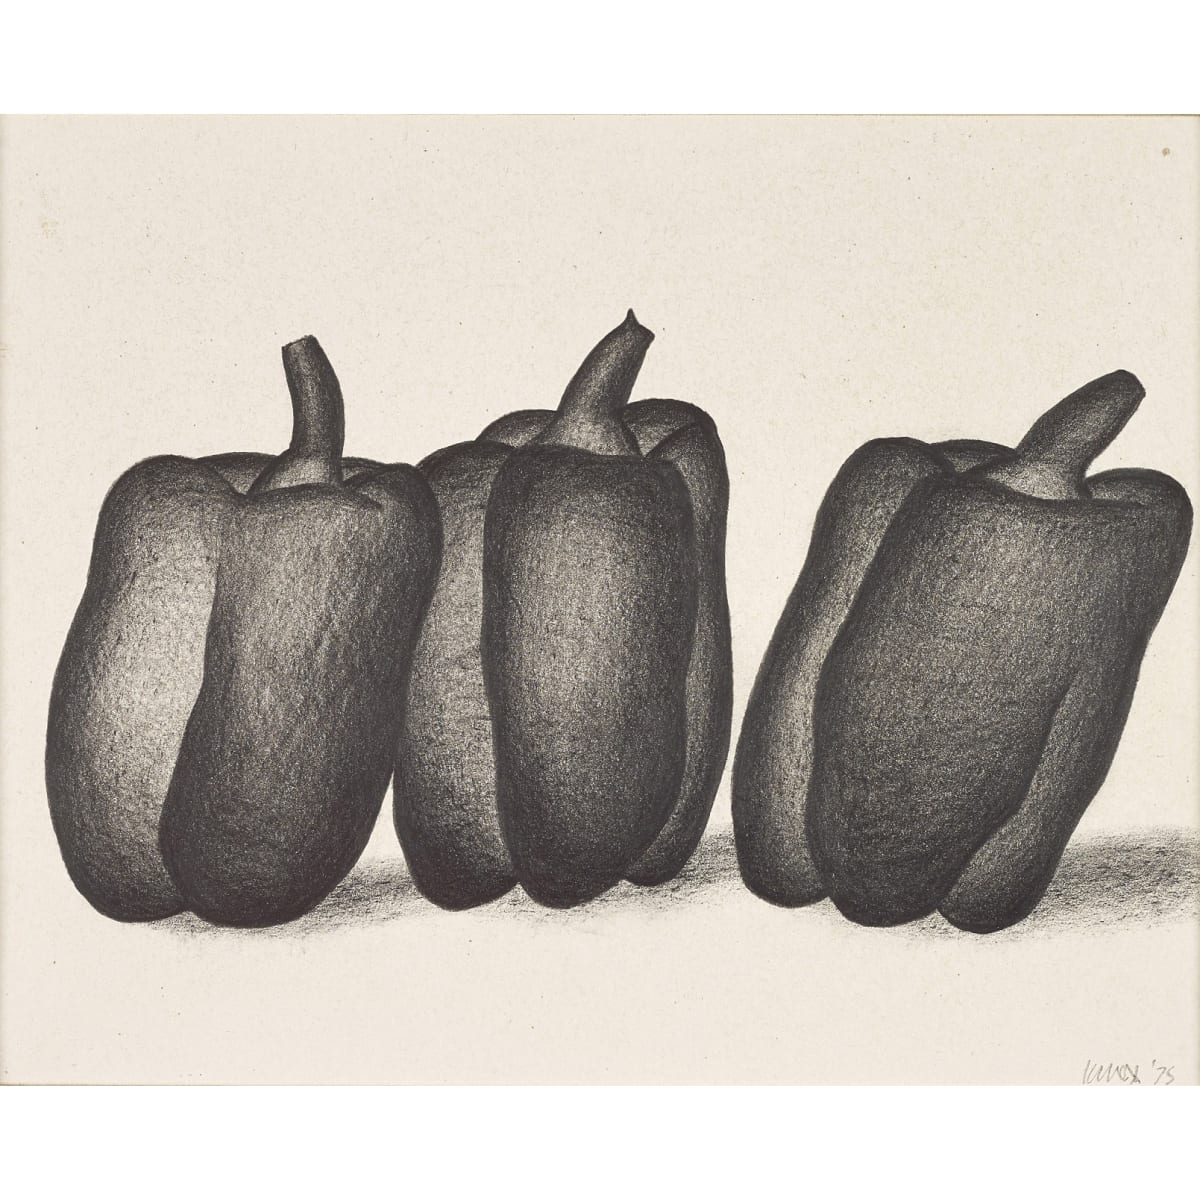 Jack Knox Peppers, 1975 signed and dated '75 conté on paper 6 x 7 1/2 inches